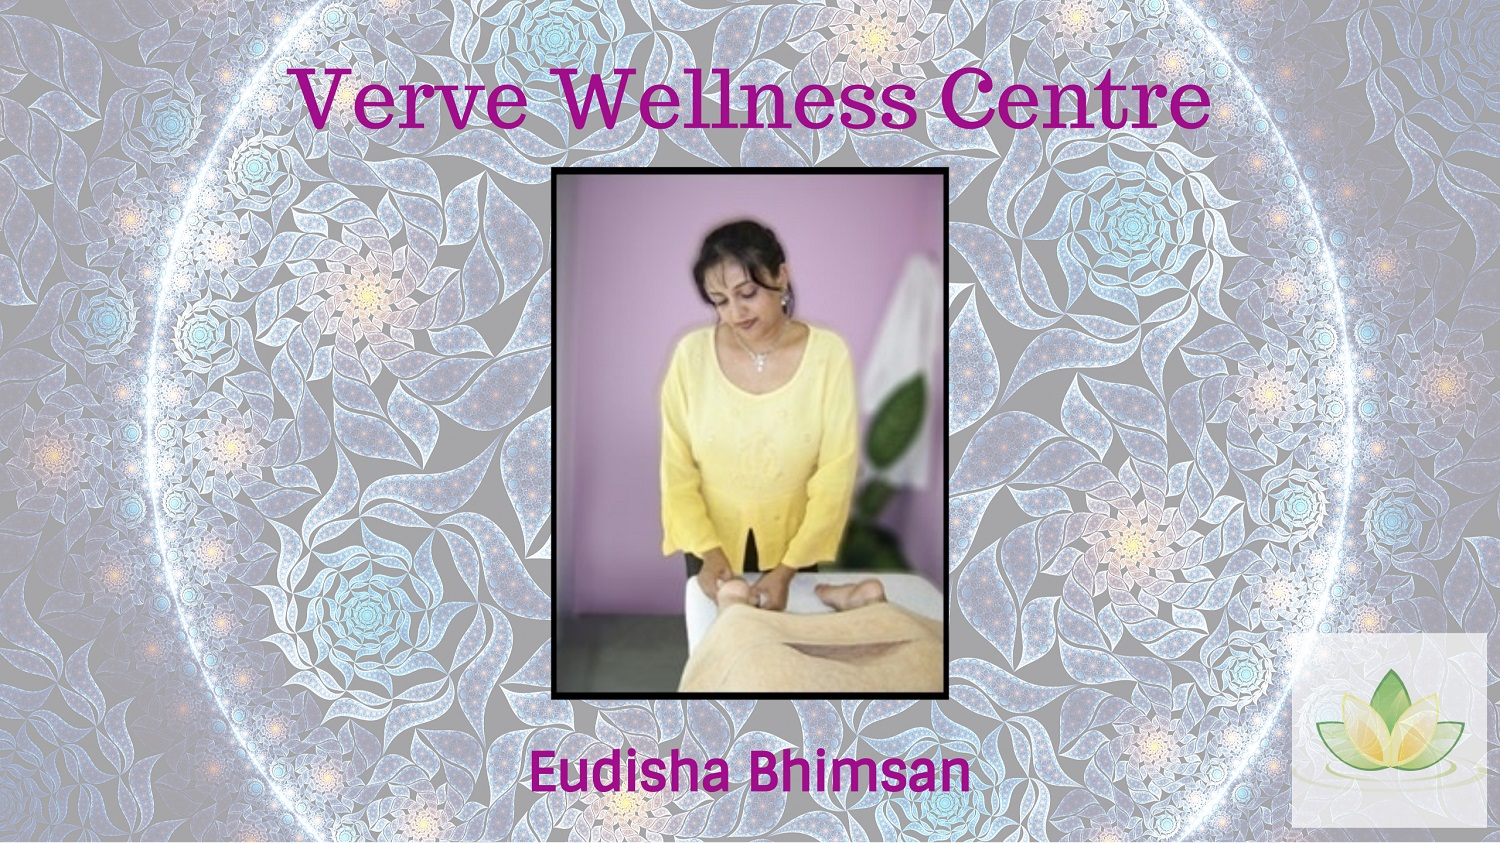 Eudisha from Verve Wellness Centre Interview